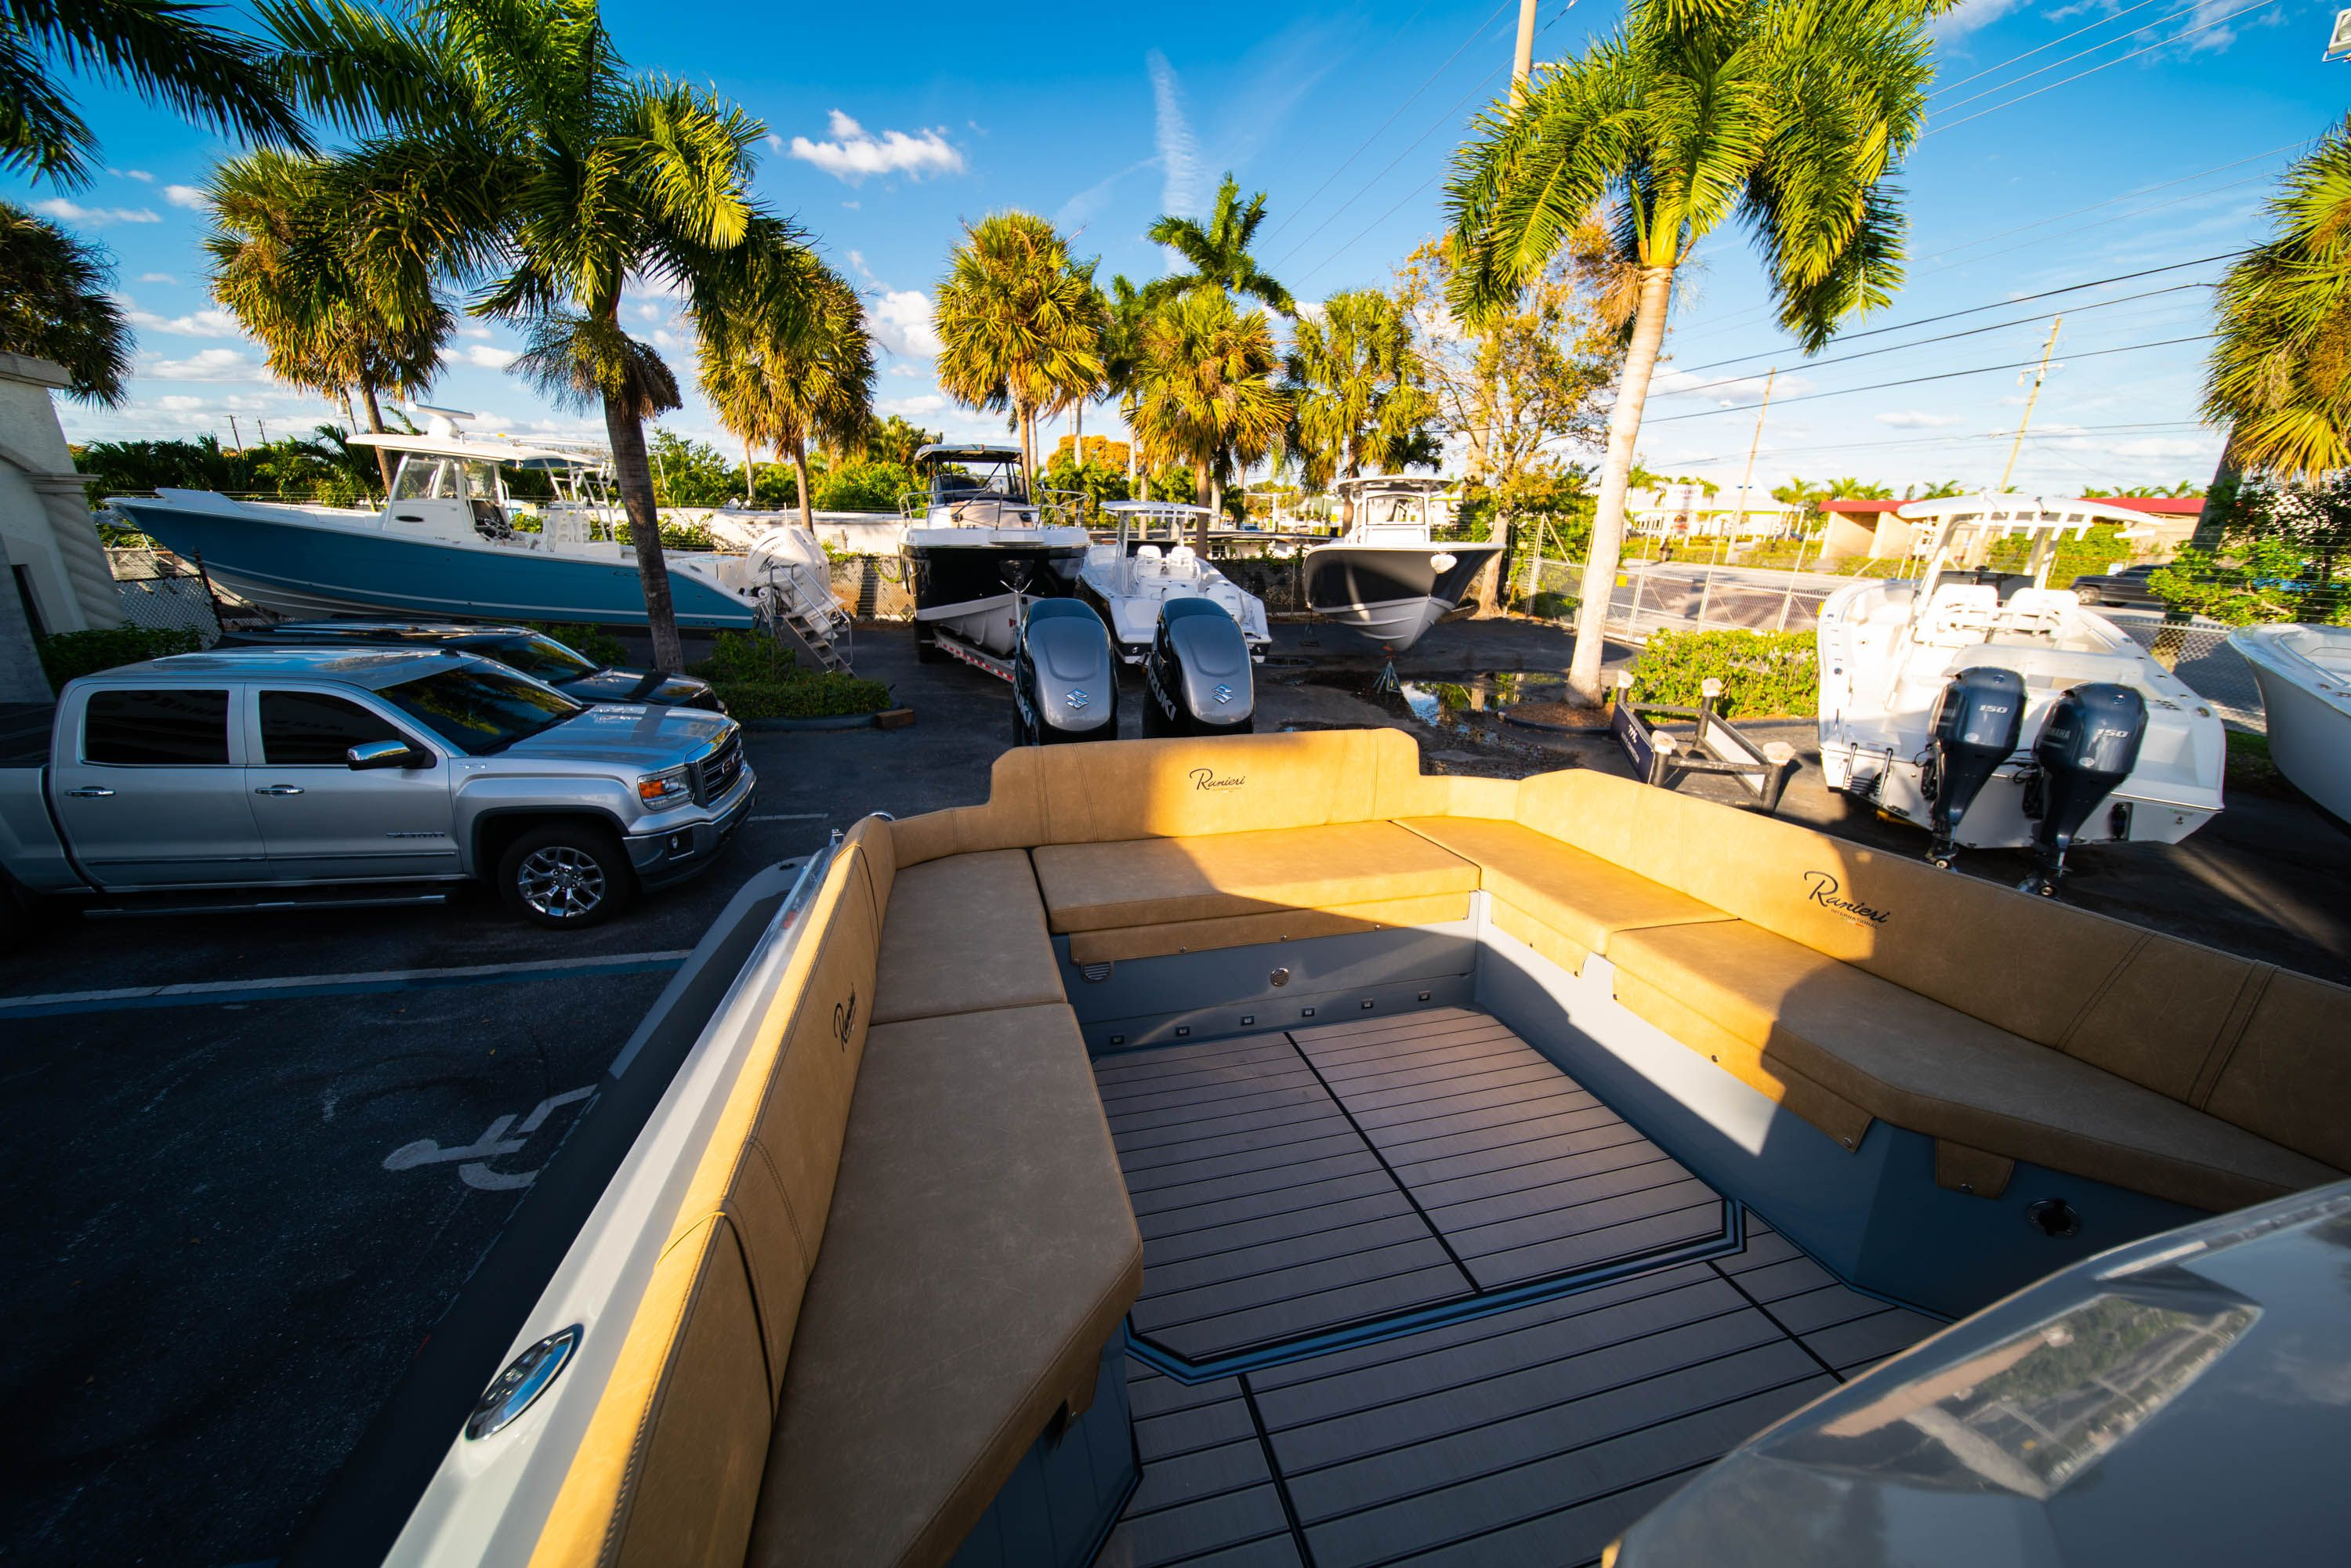 Thumbnail 18 for New 2019 Ranieri Cayman 38 Executive boat for sale in West Palm Beach, FL